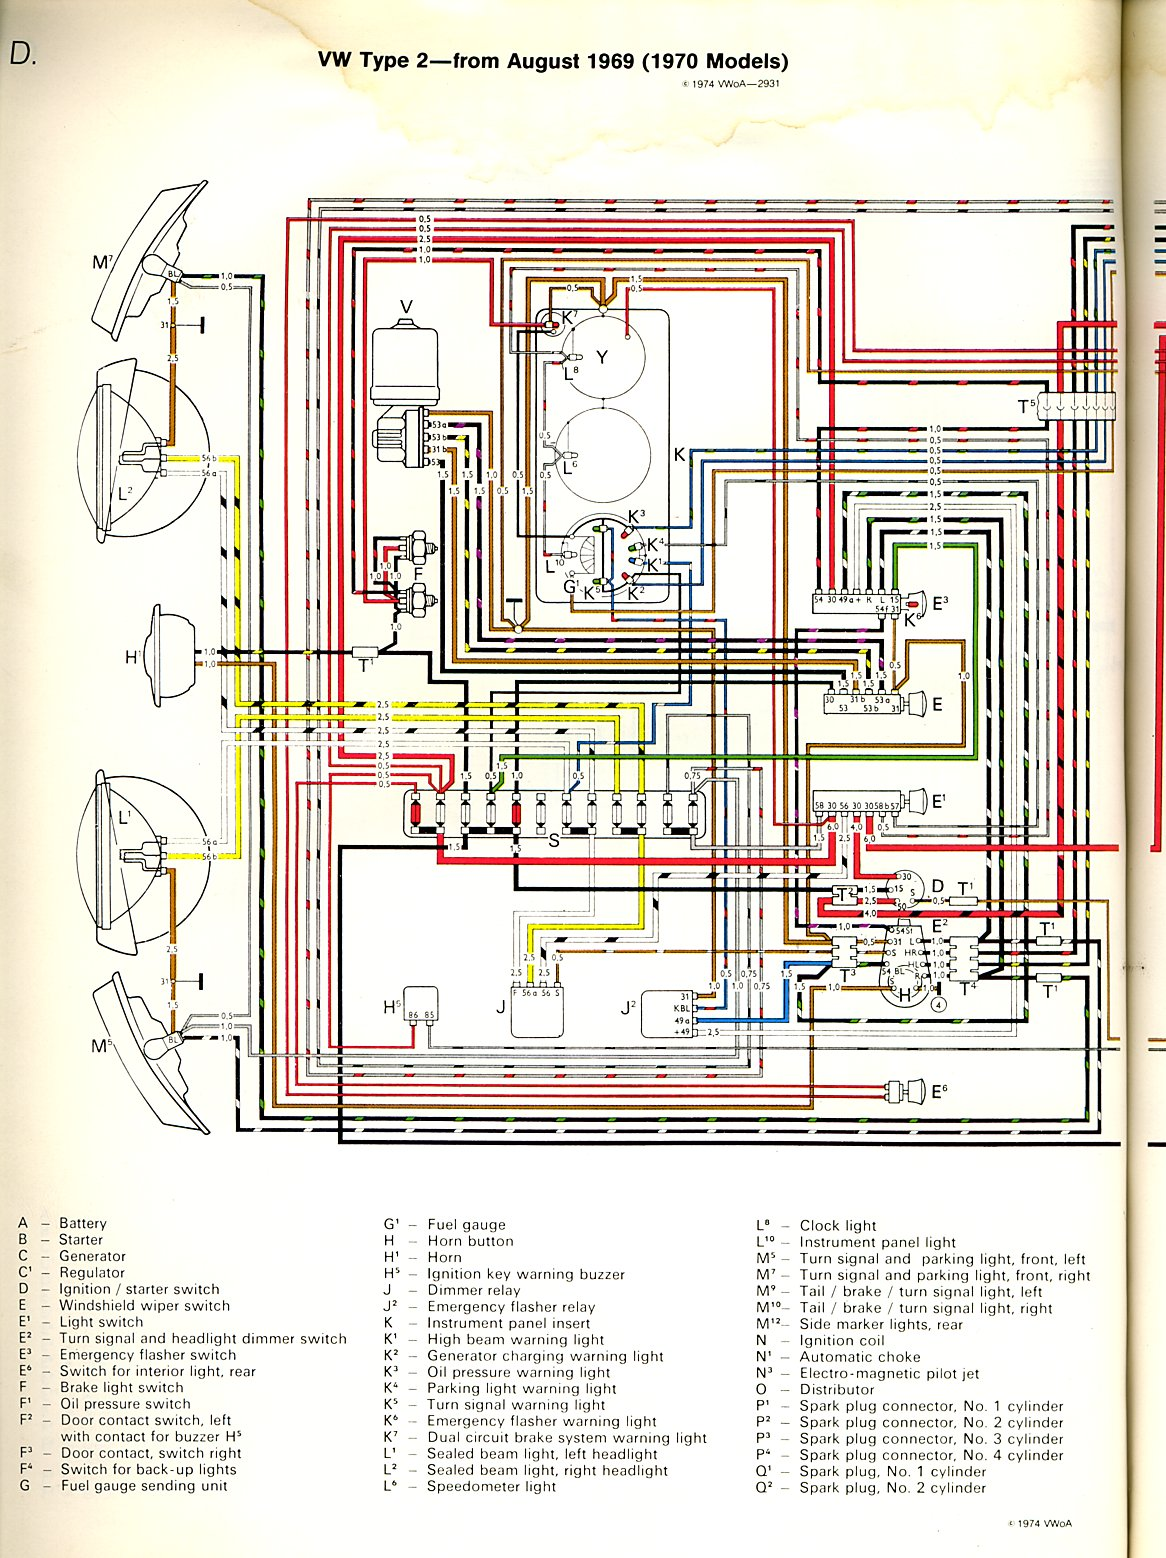 65 Gto Wiring Harness Free Download Diagram Schematic Type 2 Diagrams